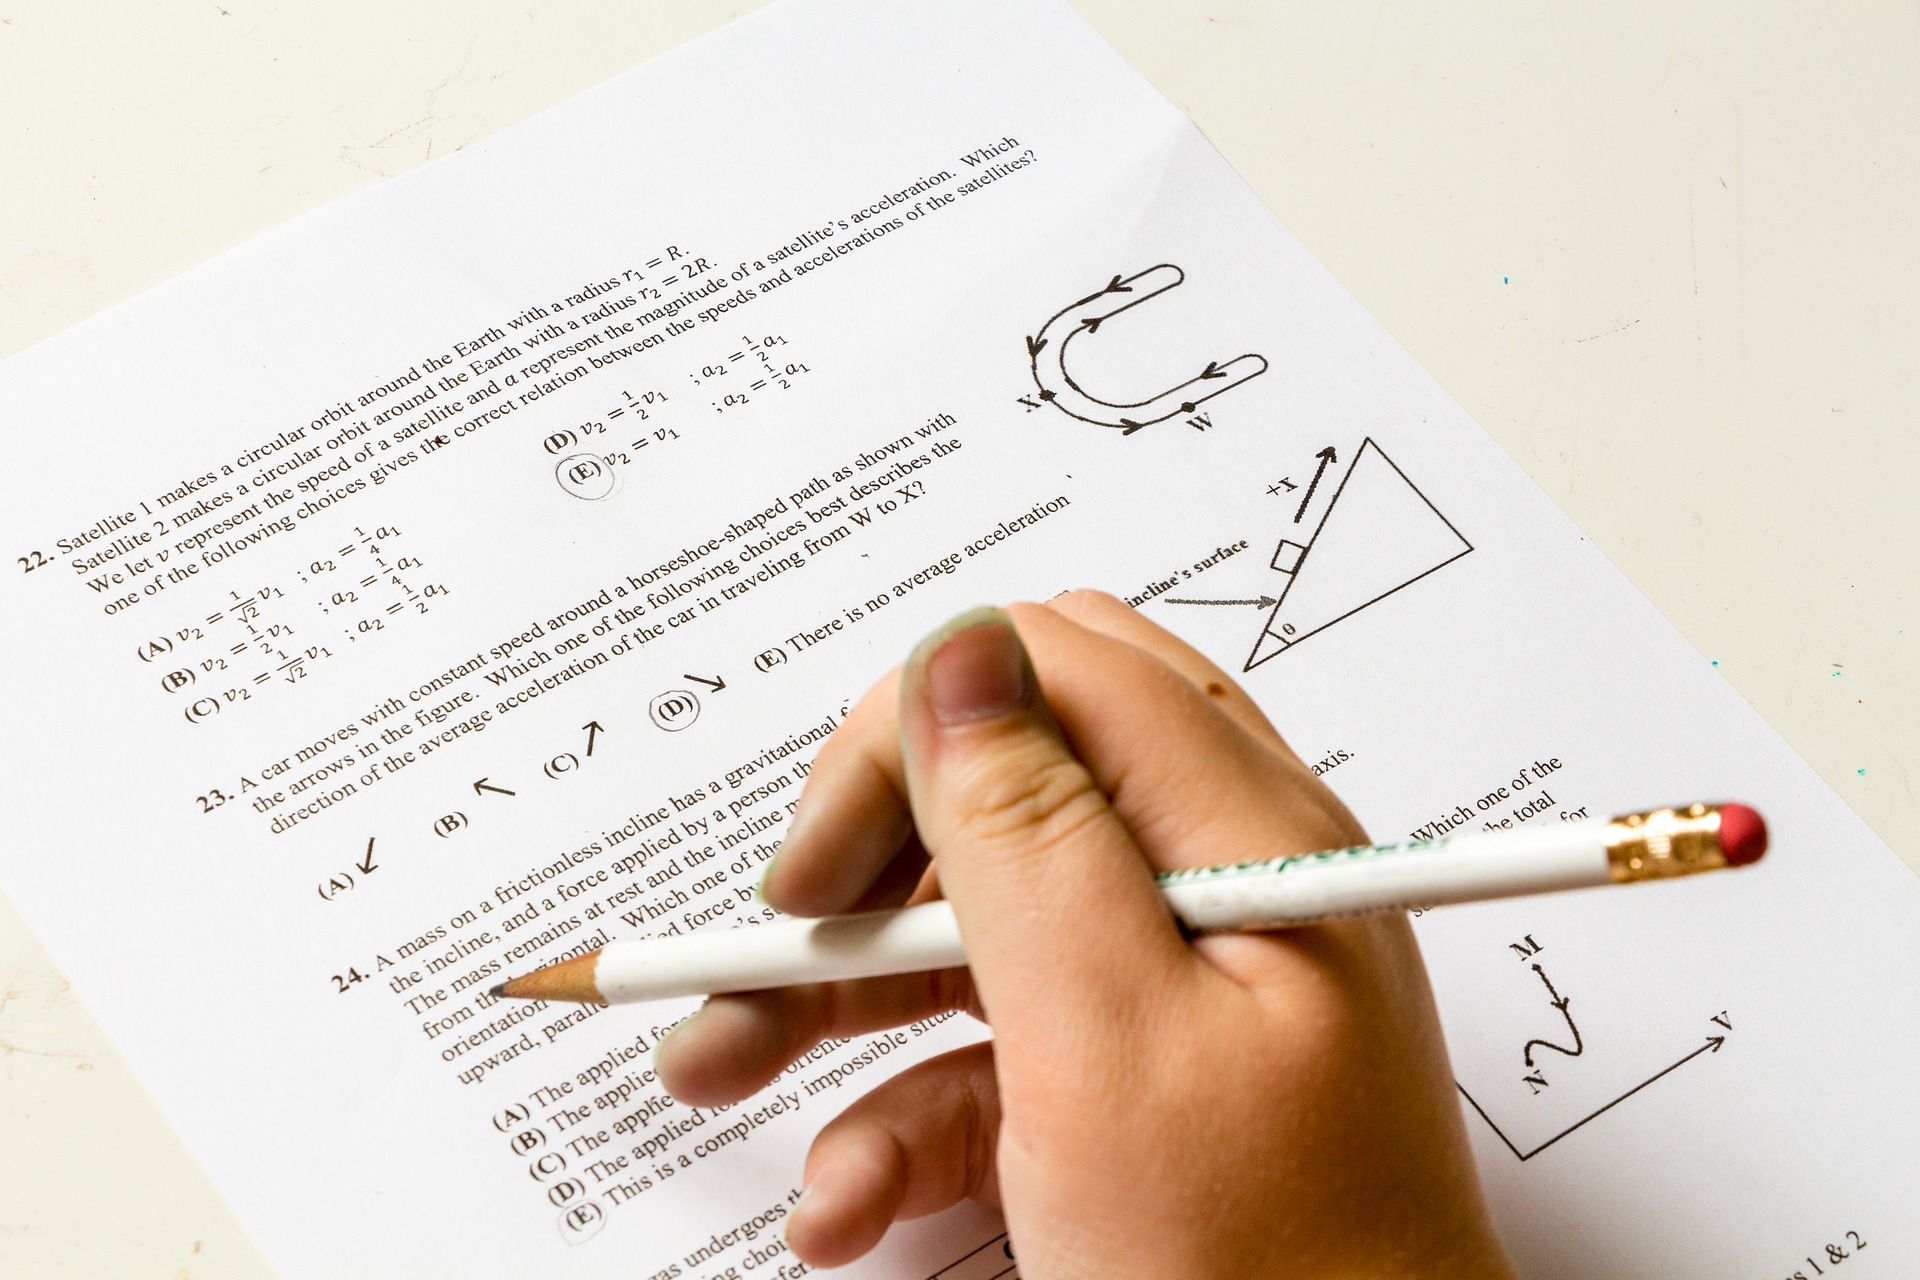 How to pass the 11 plus exam in England